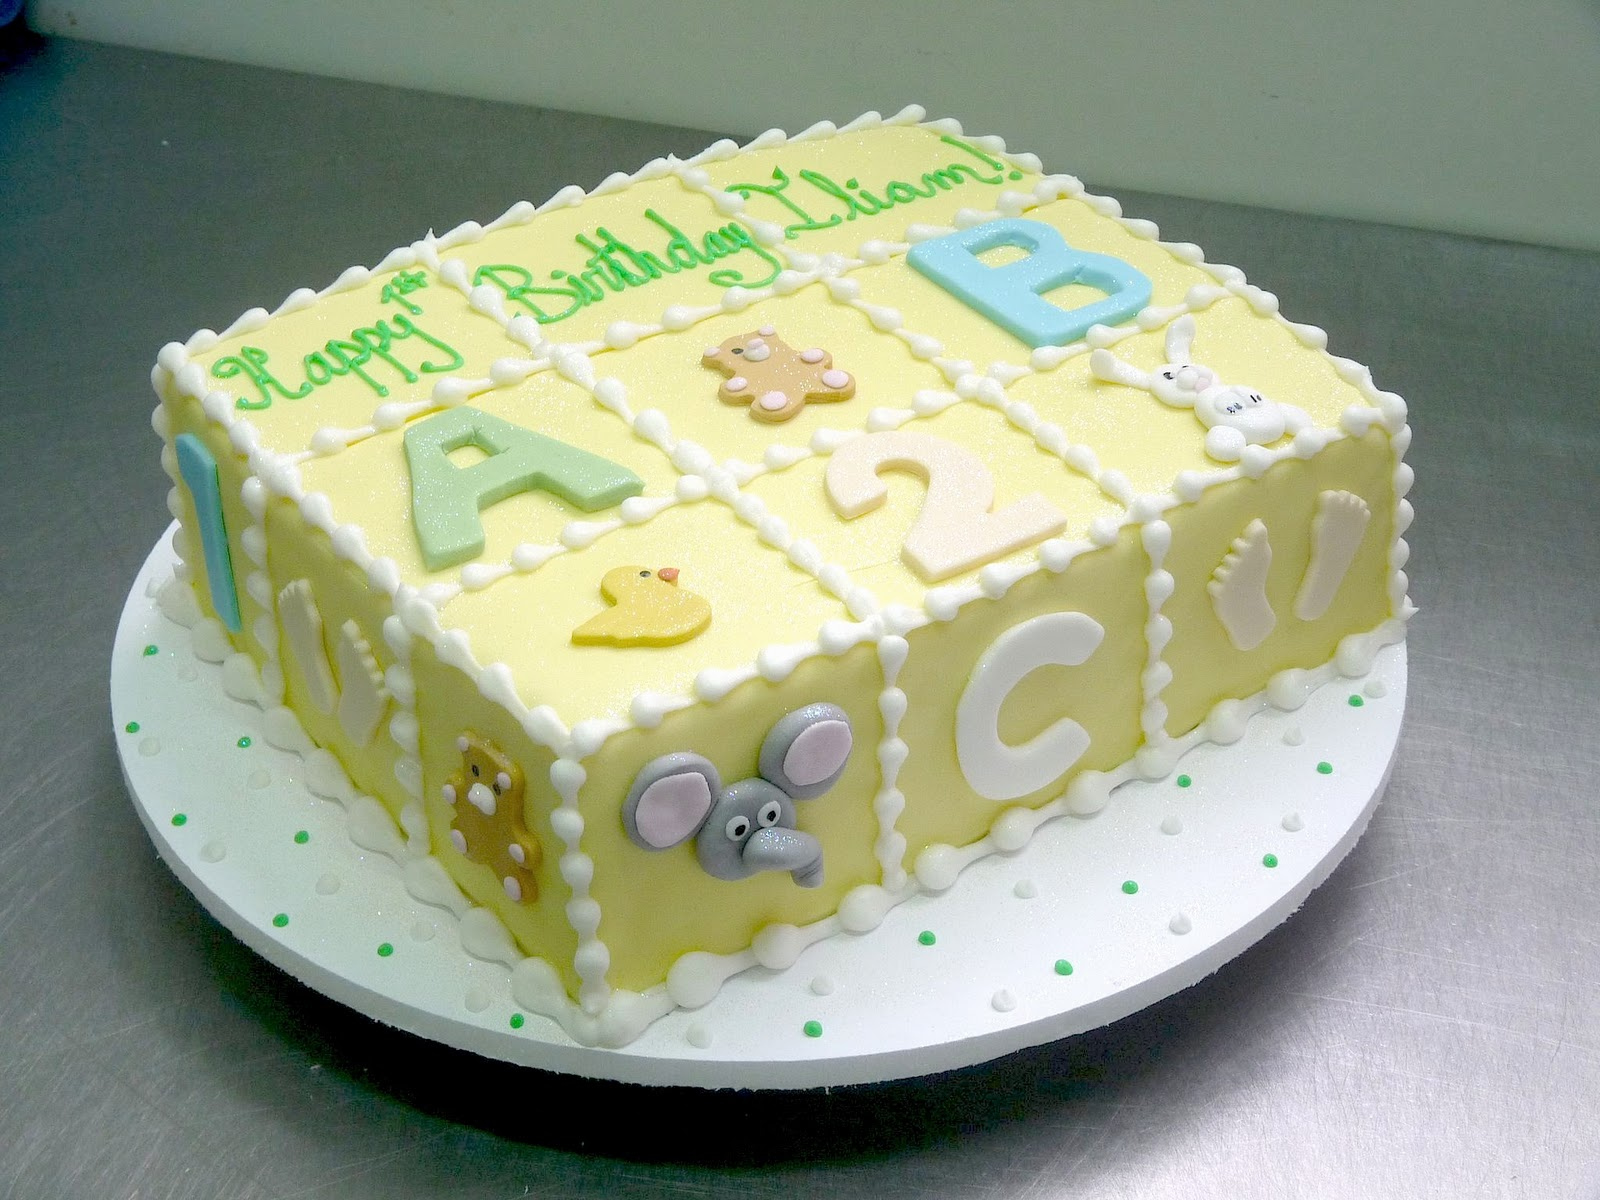 Cake Designs For Baby : Baby Shower Cakes - idolsjaponesas